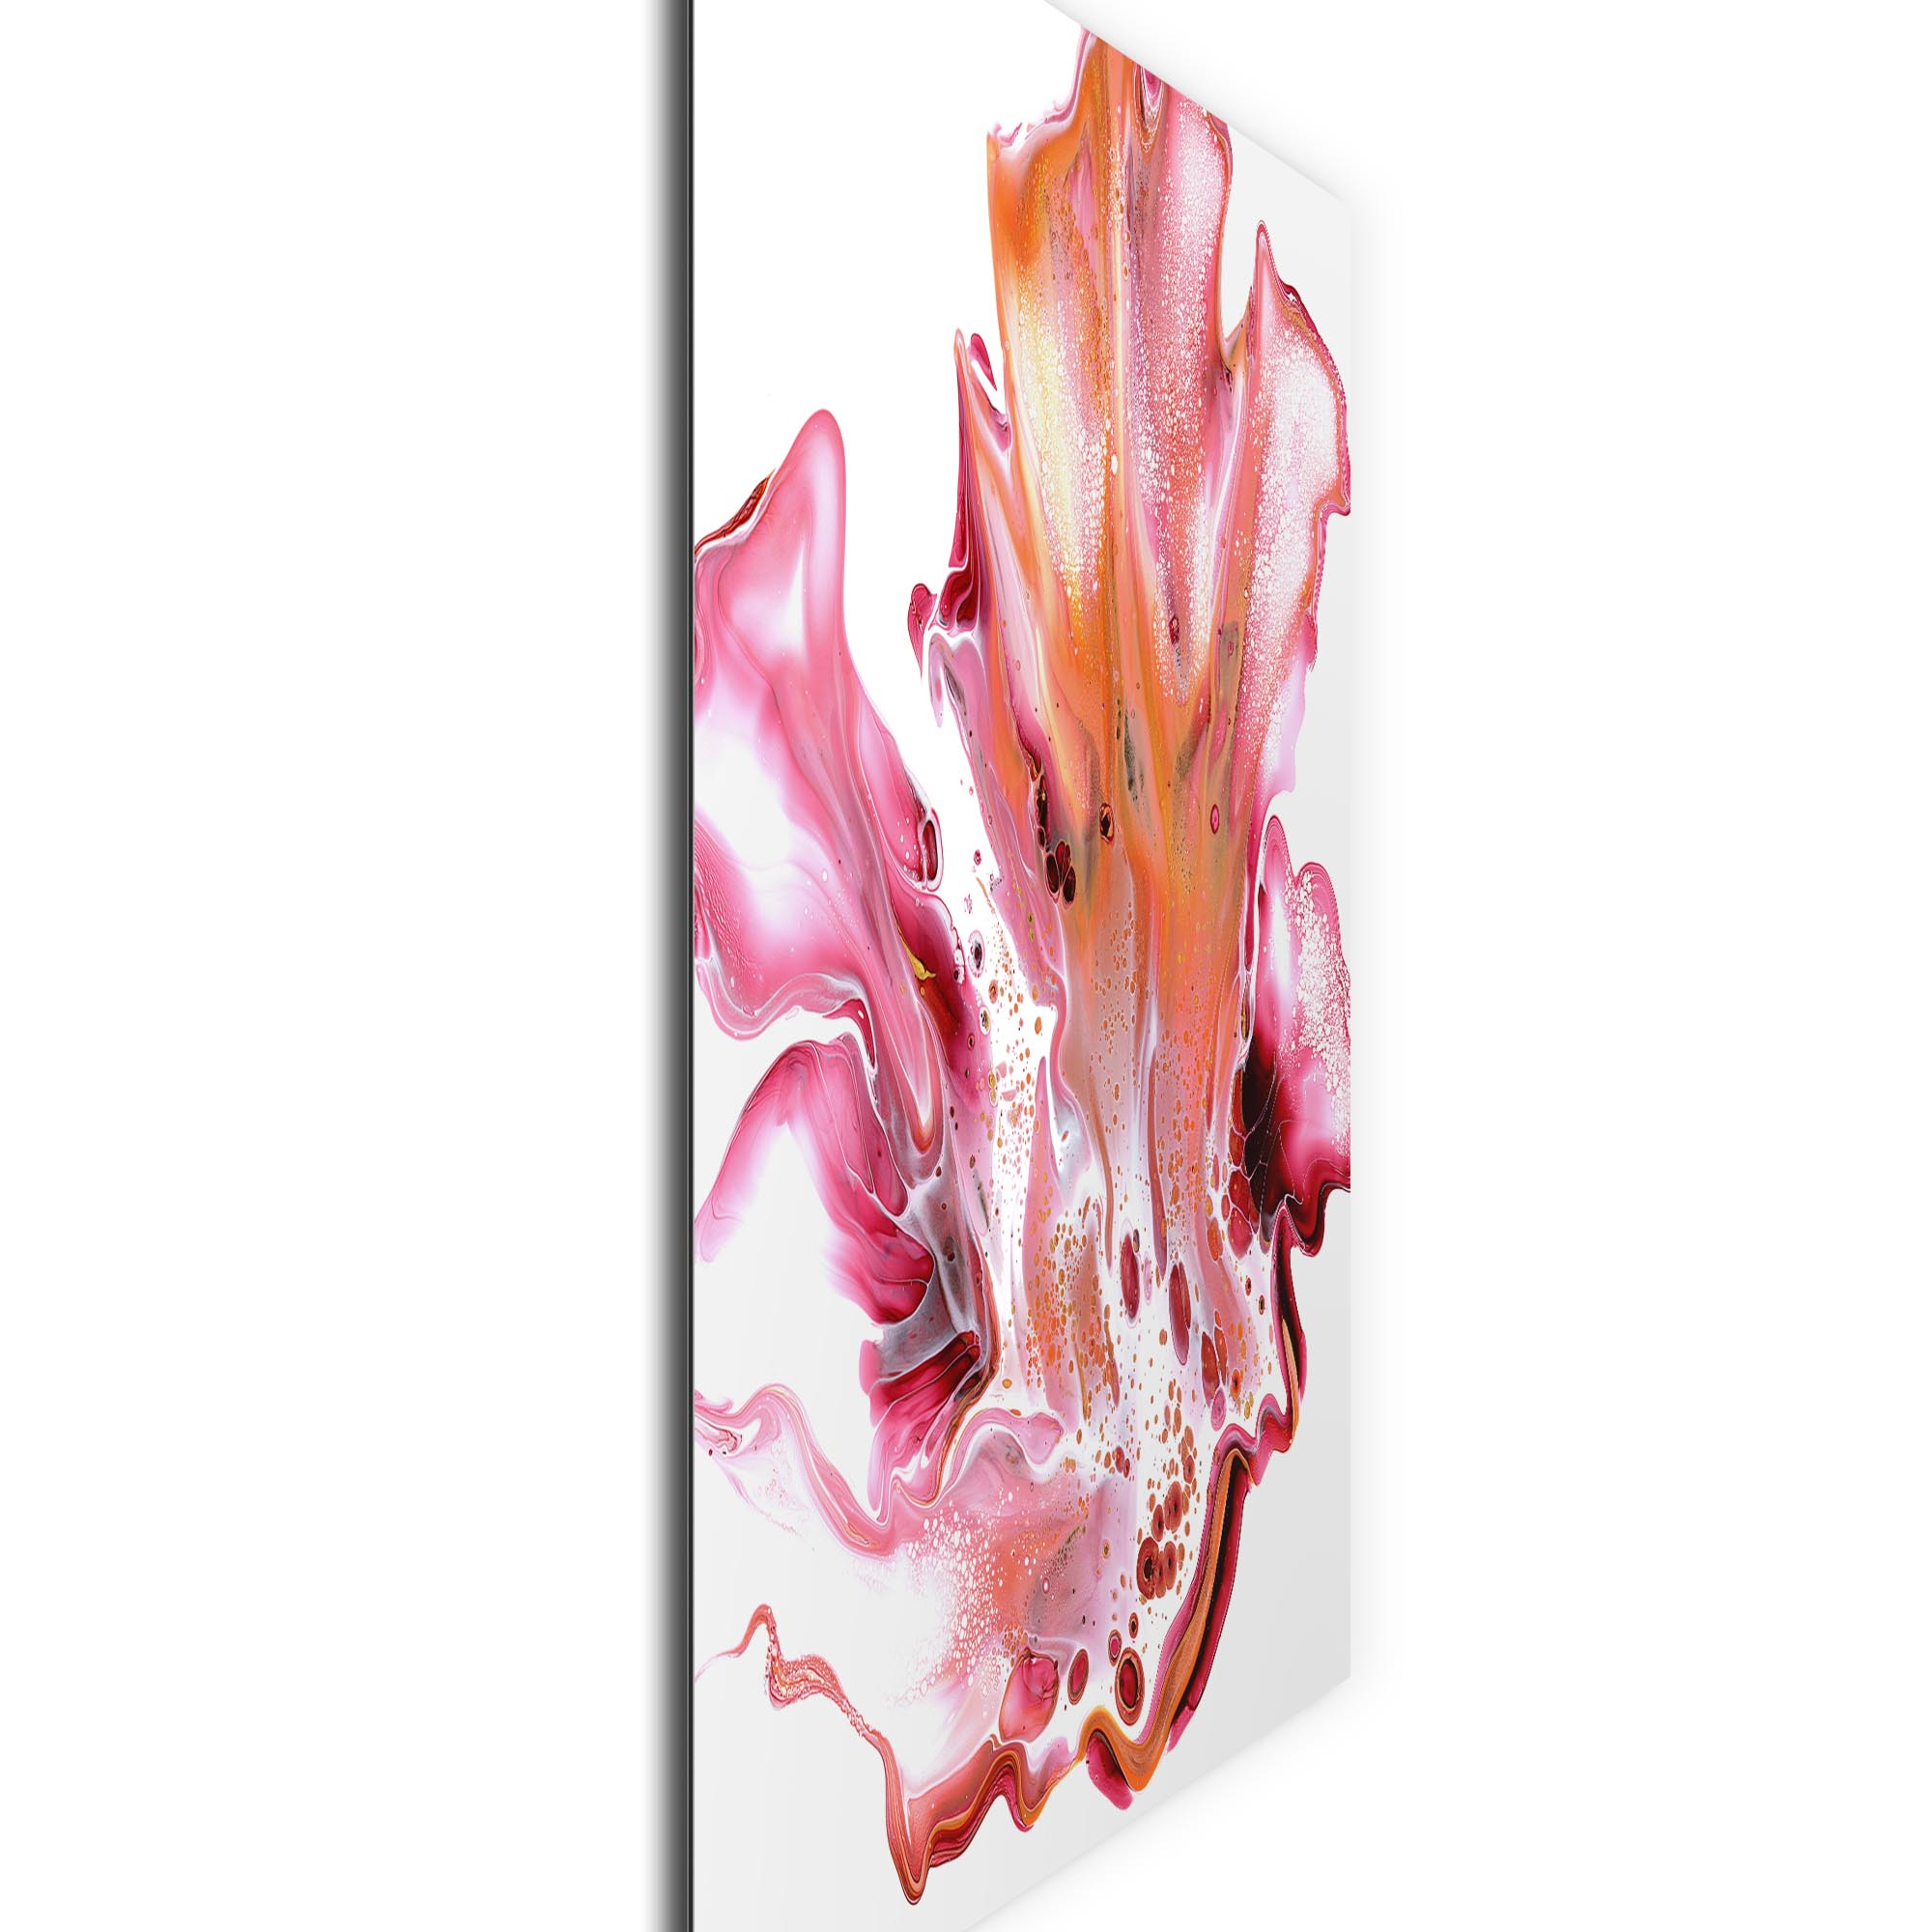 Floral by Elana Reiter - Abstract Wall Art, Modern Home Decor (36in x 36in) - Image 2